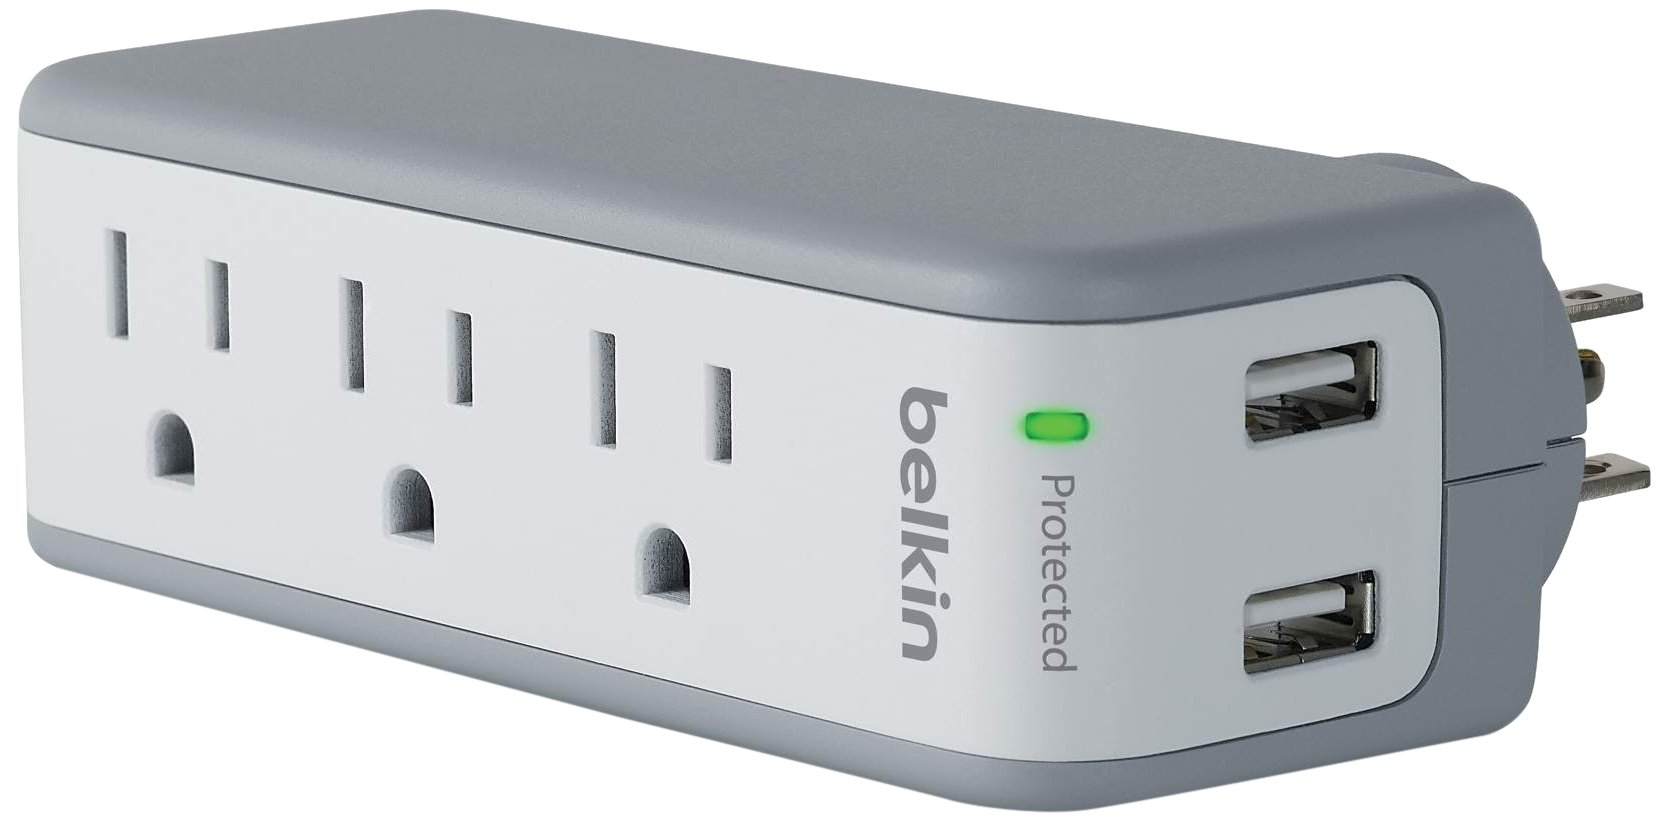 Belkin SurgePlus USB Swivel Surge Protector and Charger (Power strip with 3 AC Outlets, 2 USB Ports 2.1 AMP/10 Watt) and rotating plug